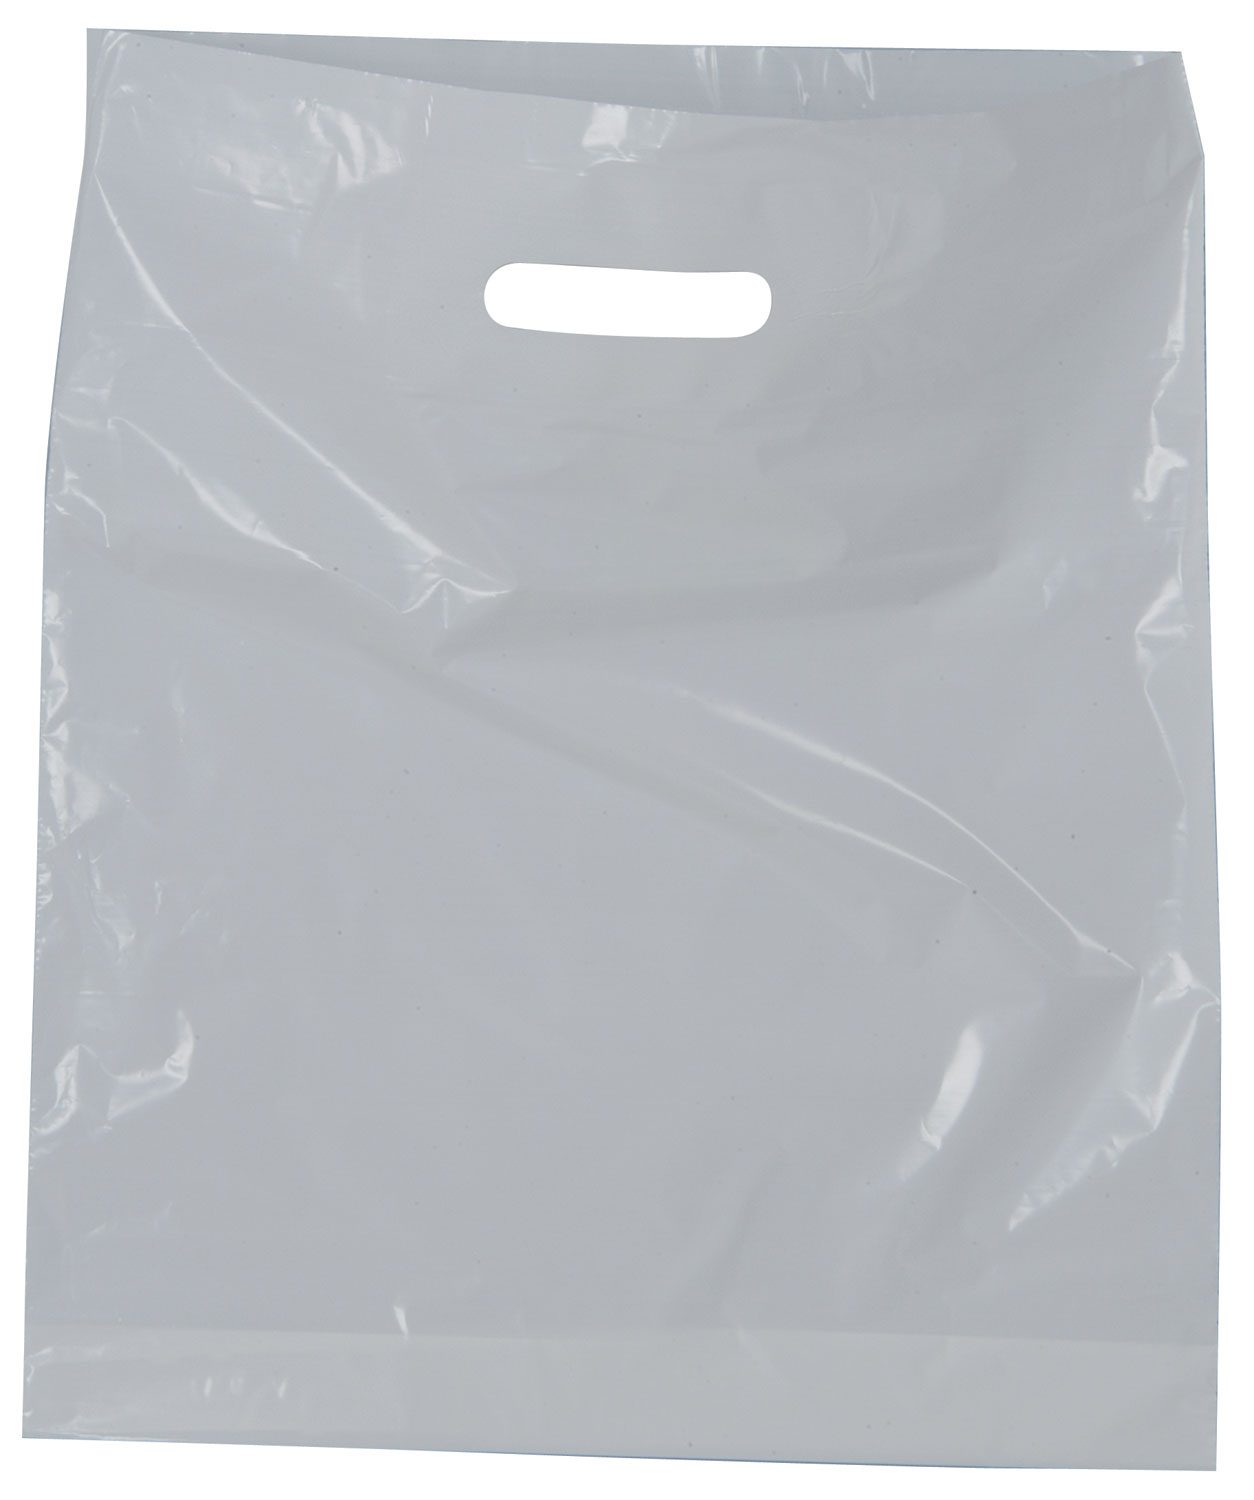 "White Carrier Bag, 380 x 457 x 75mm (15"" x 18"" x 3 "" approx), 30 microns"